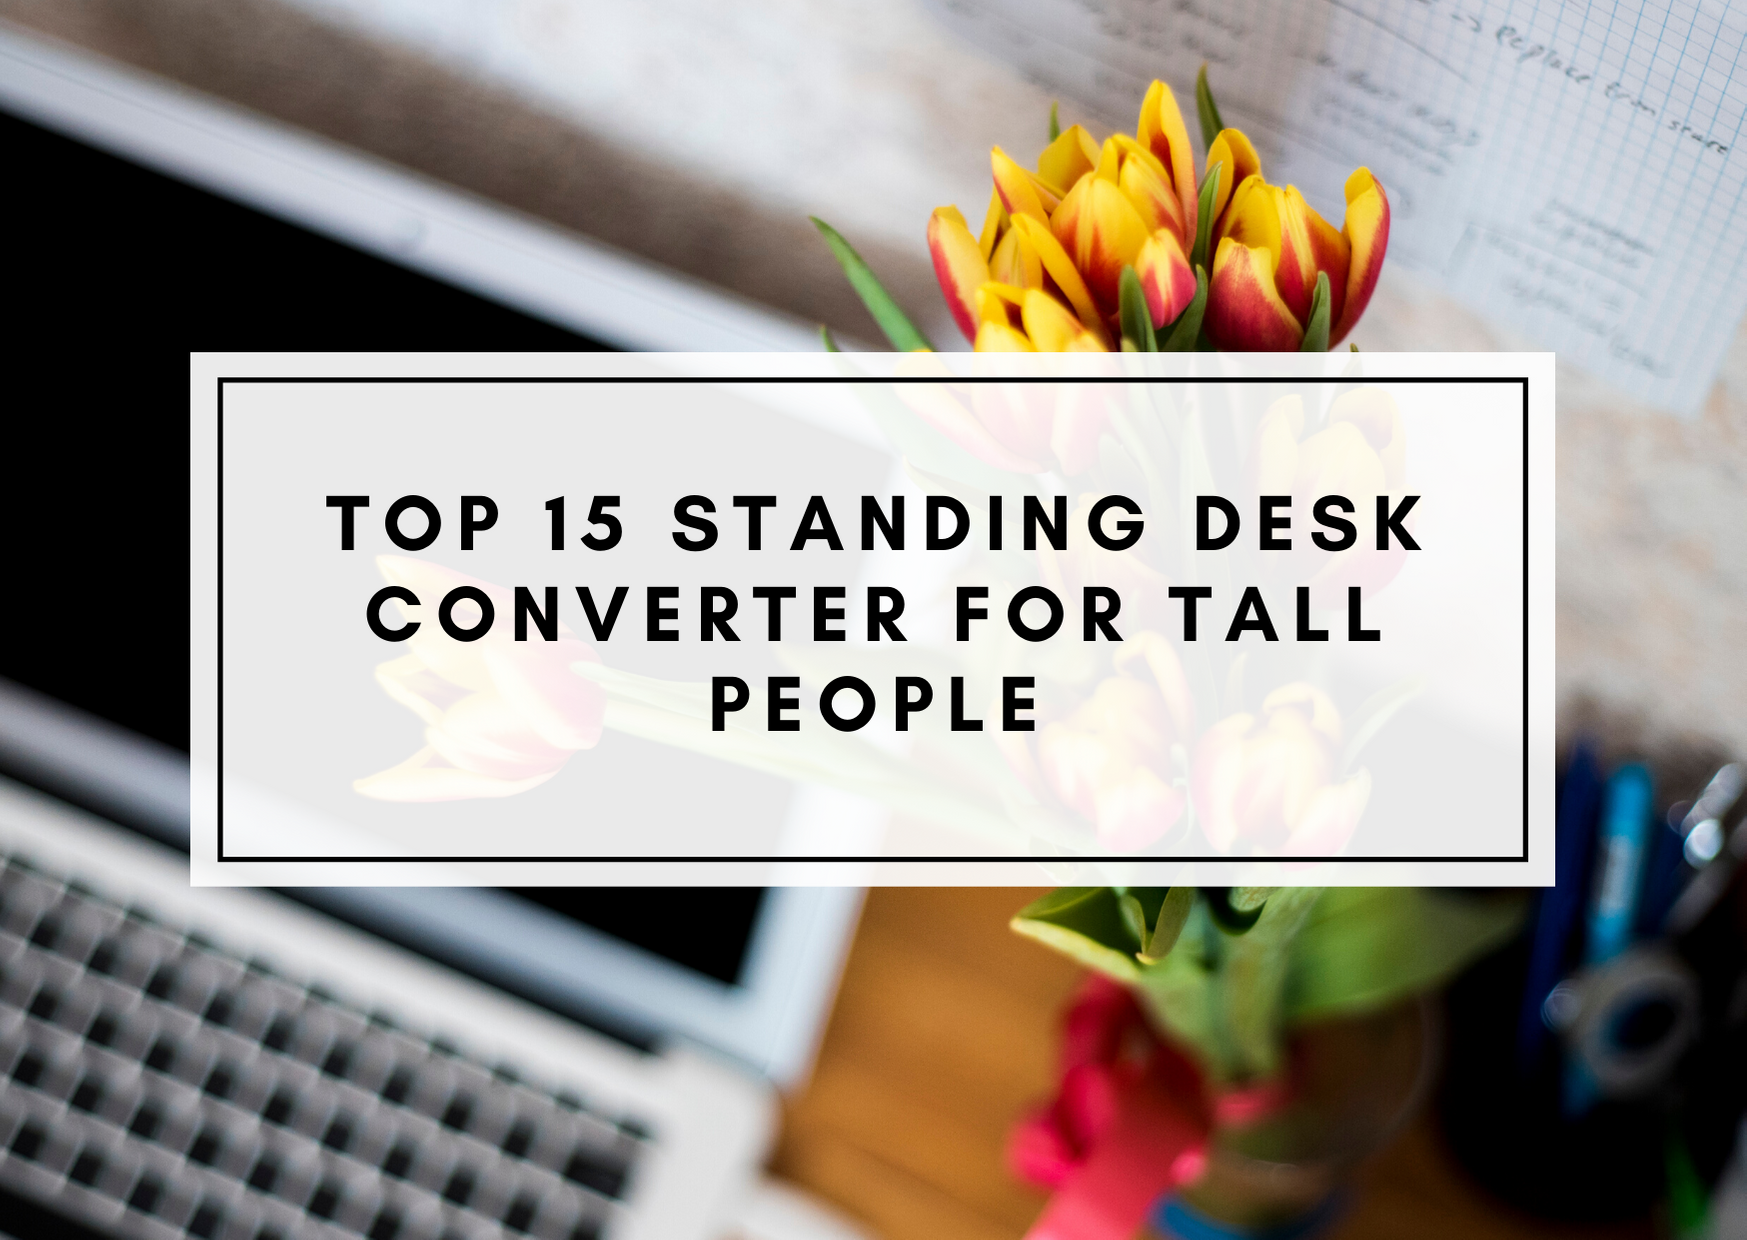 Best Standing Desk Converter For Tall People